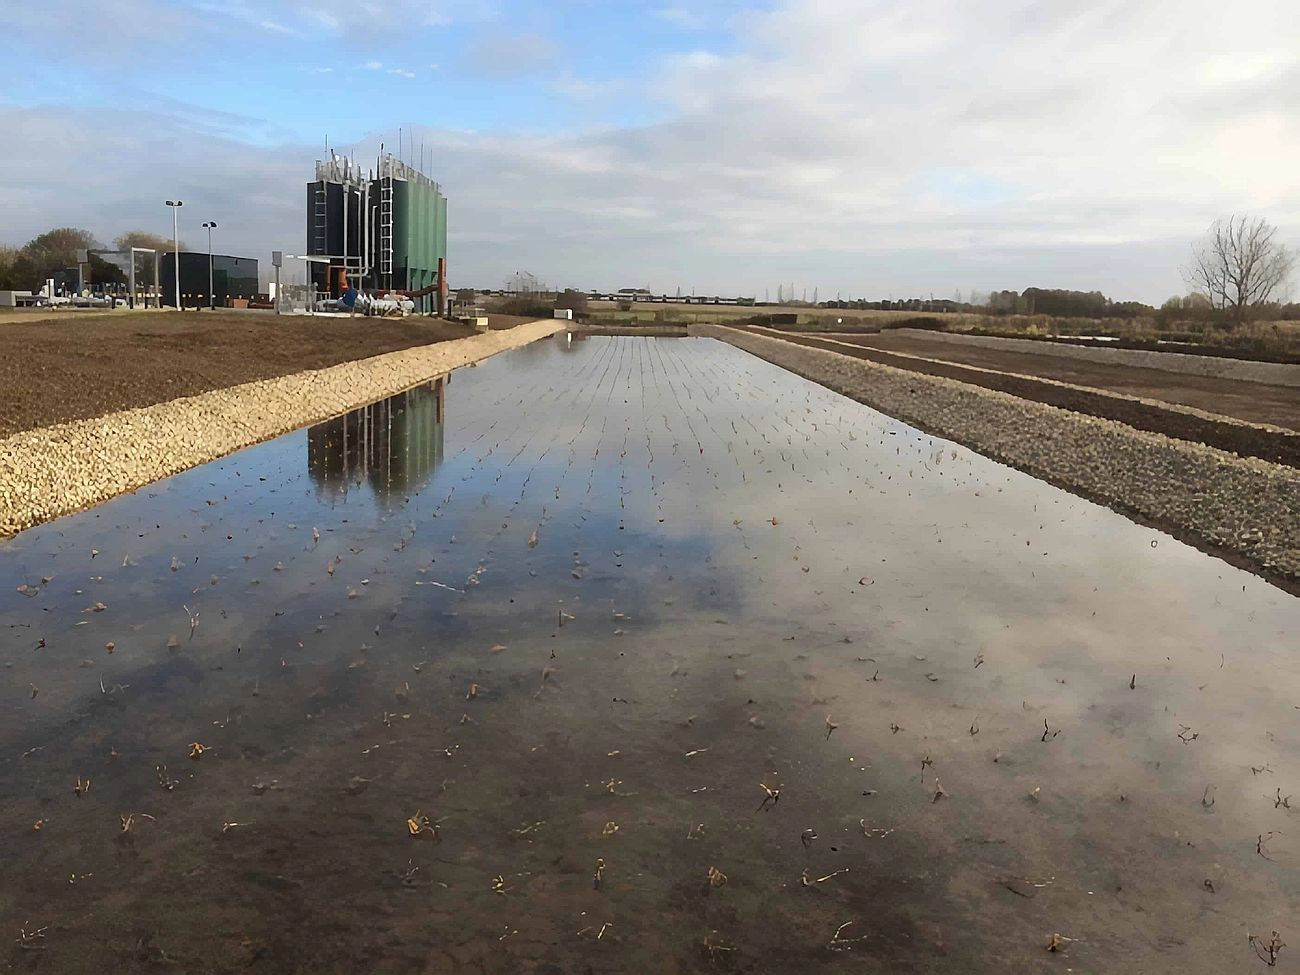 Lidsey Wastewater Treatment Works - Project carried out by Eco~tech Systems in West Sussex.